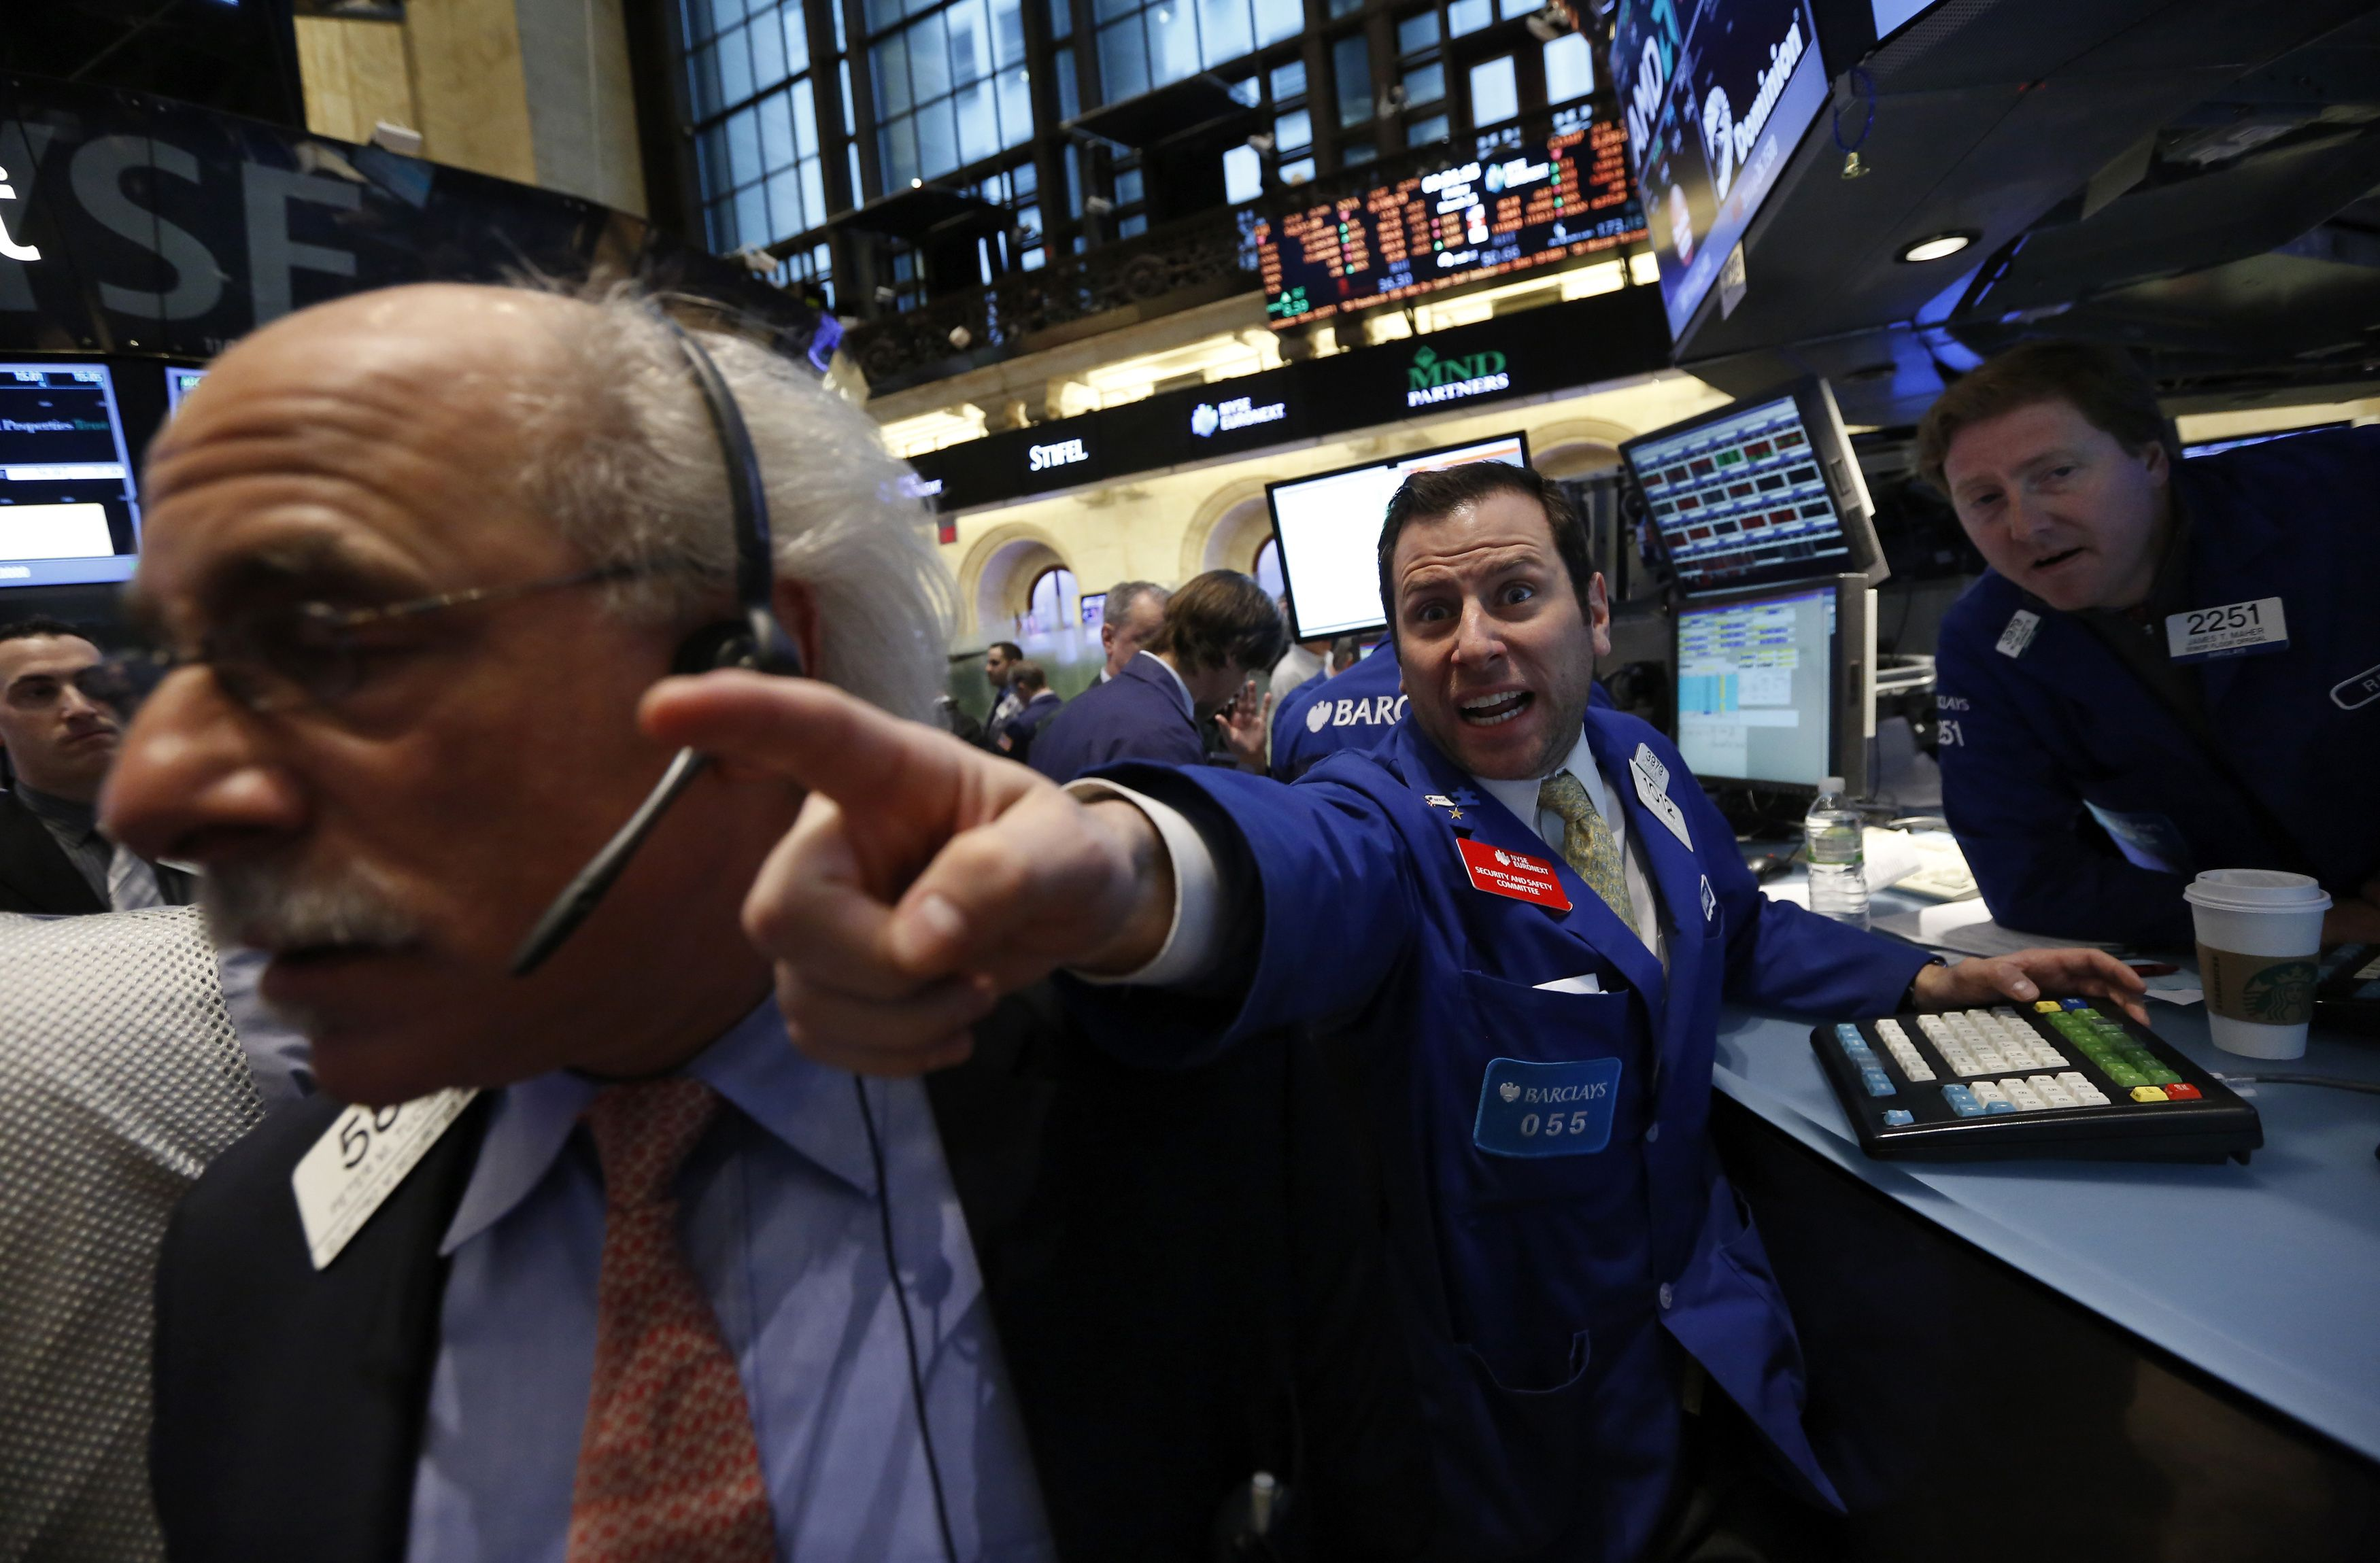 Barclays specialist trader Michael Pistillo shouts out a price just after the opening bell on the floor at the New York Stock Exchange, March 15, 2013. REUTERS/Brendan McDermid (UNITED STATES - Tags: BUSINESS) - RTR3F1A6